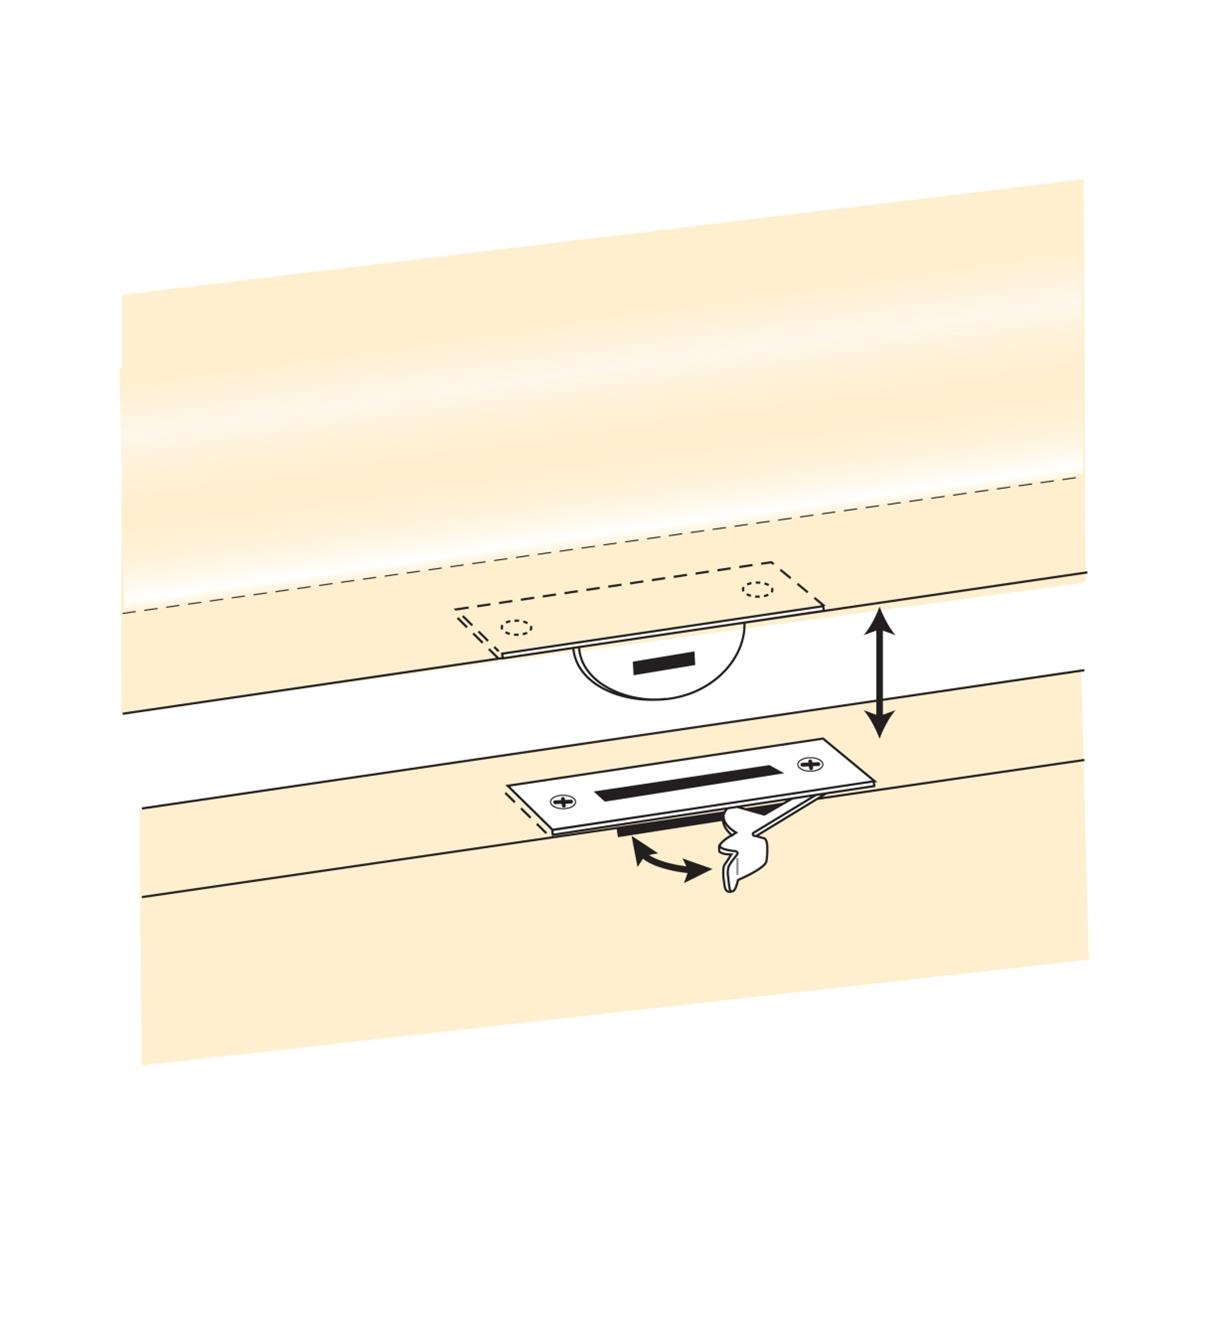 Illustration of lid latch in use on a casket